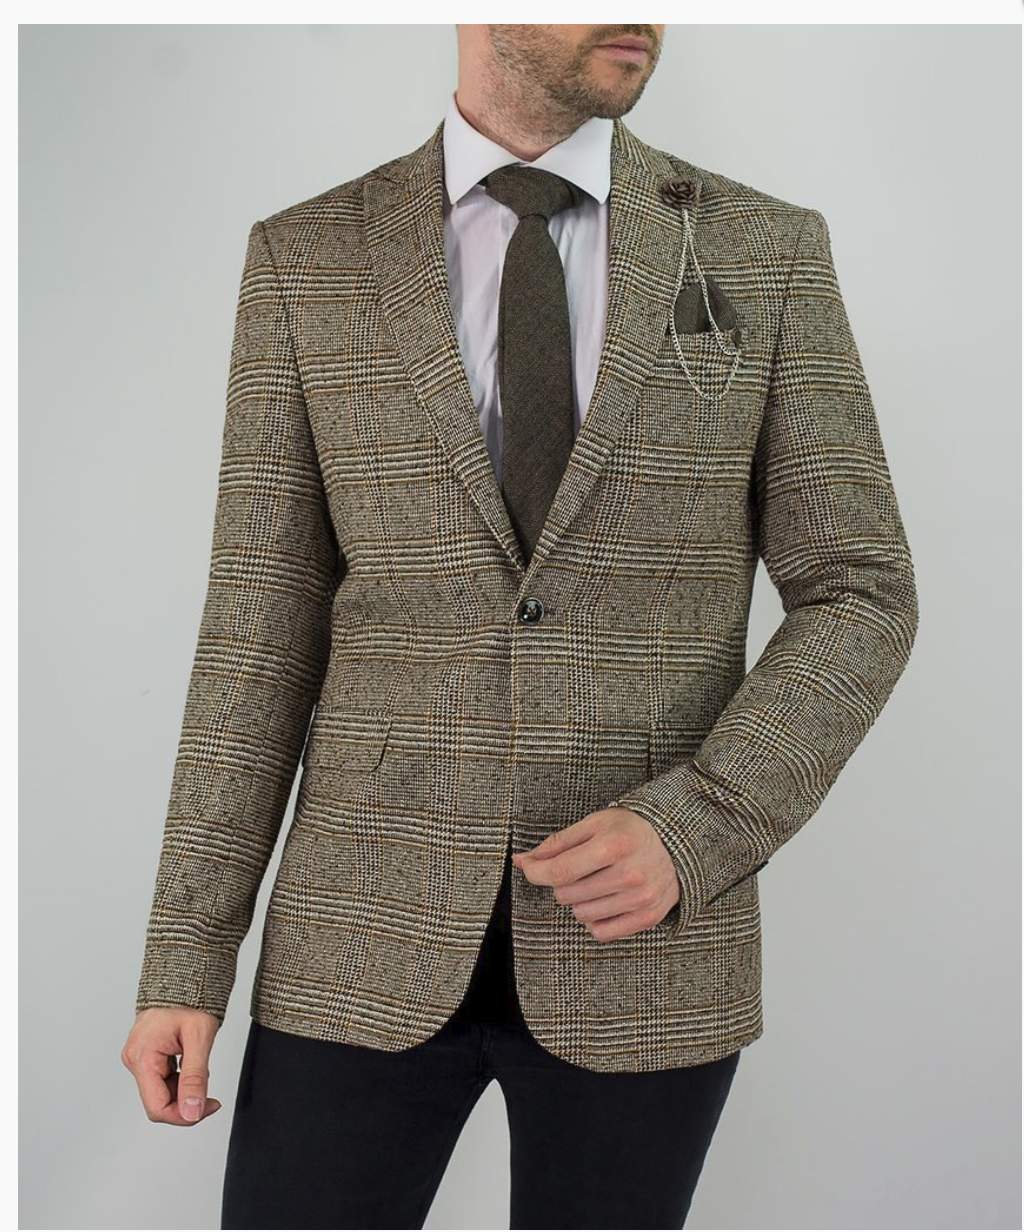 Cavani Dominic Tan Tweed Blazer - jjdonnelly